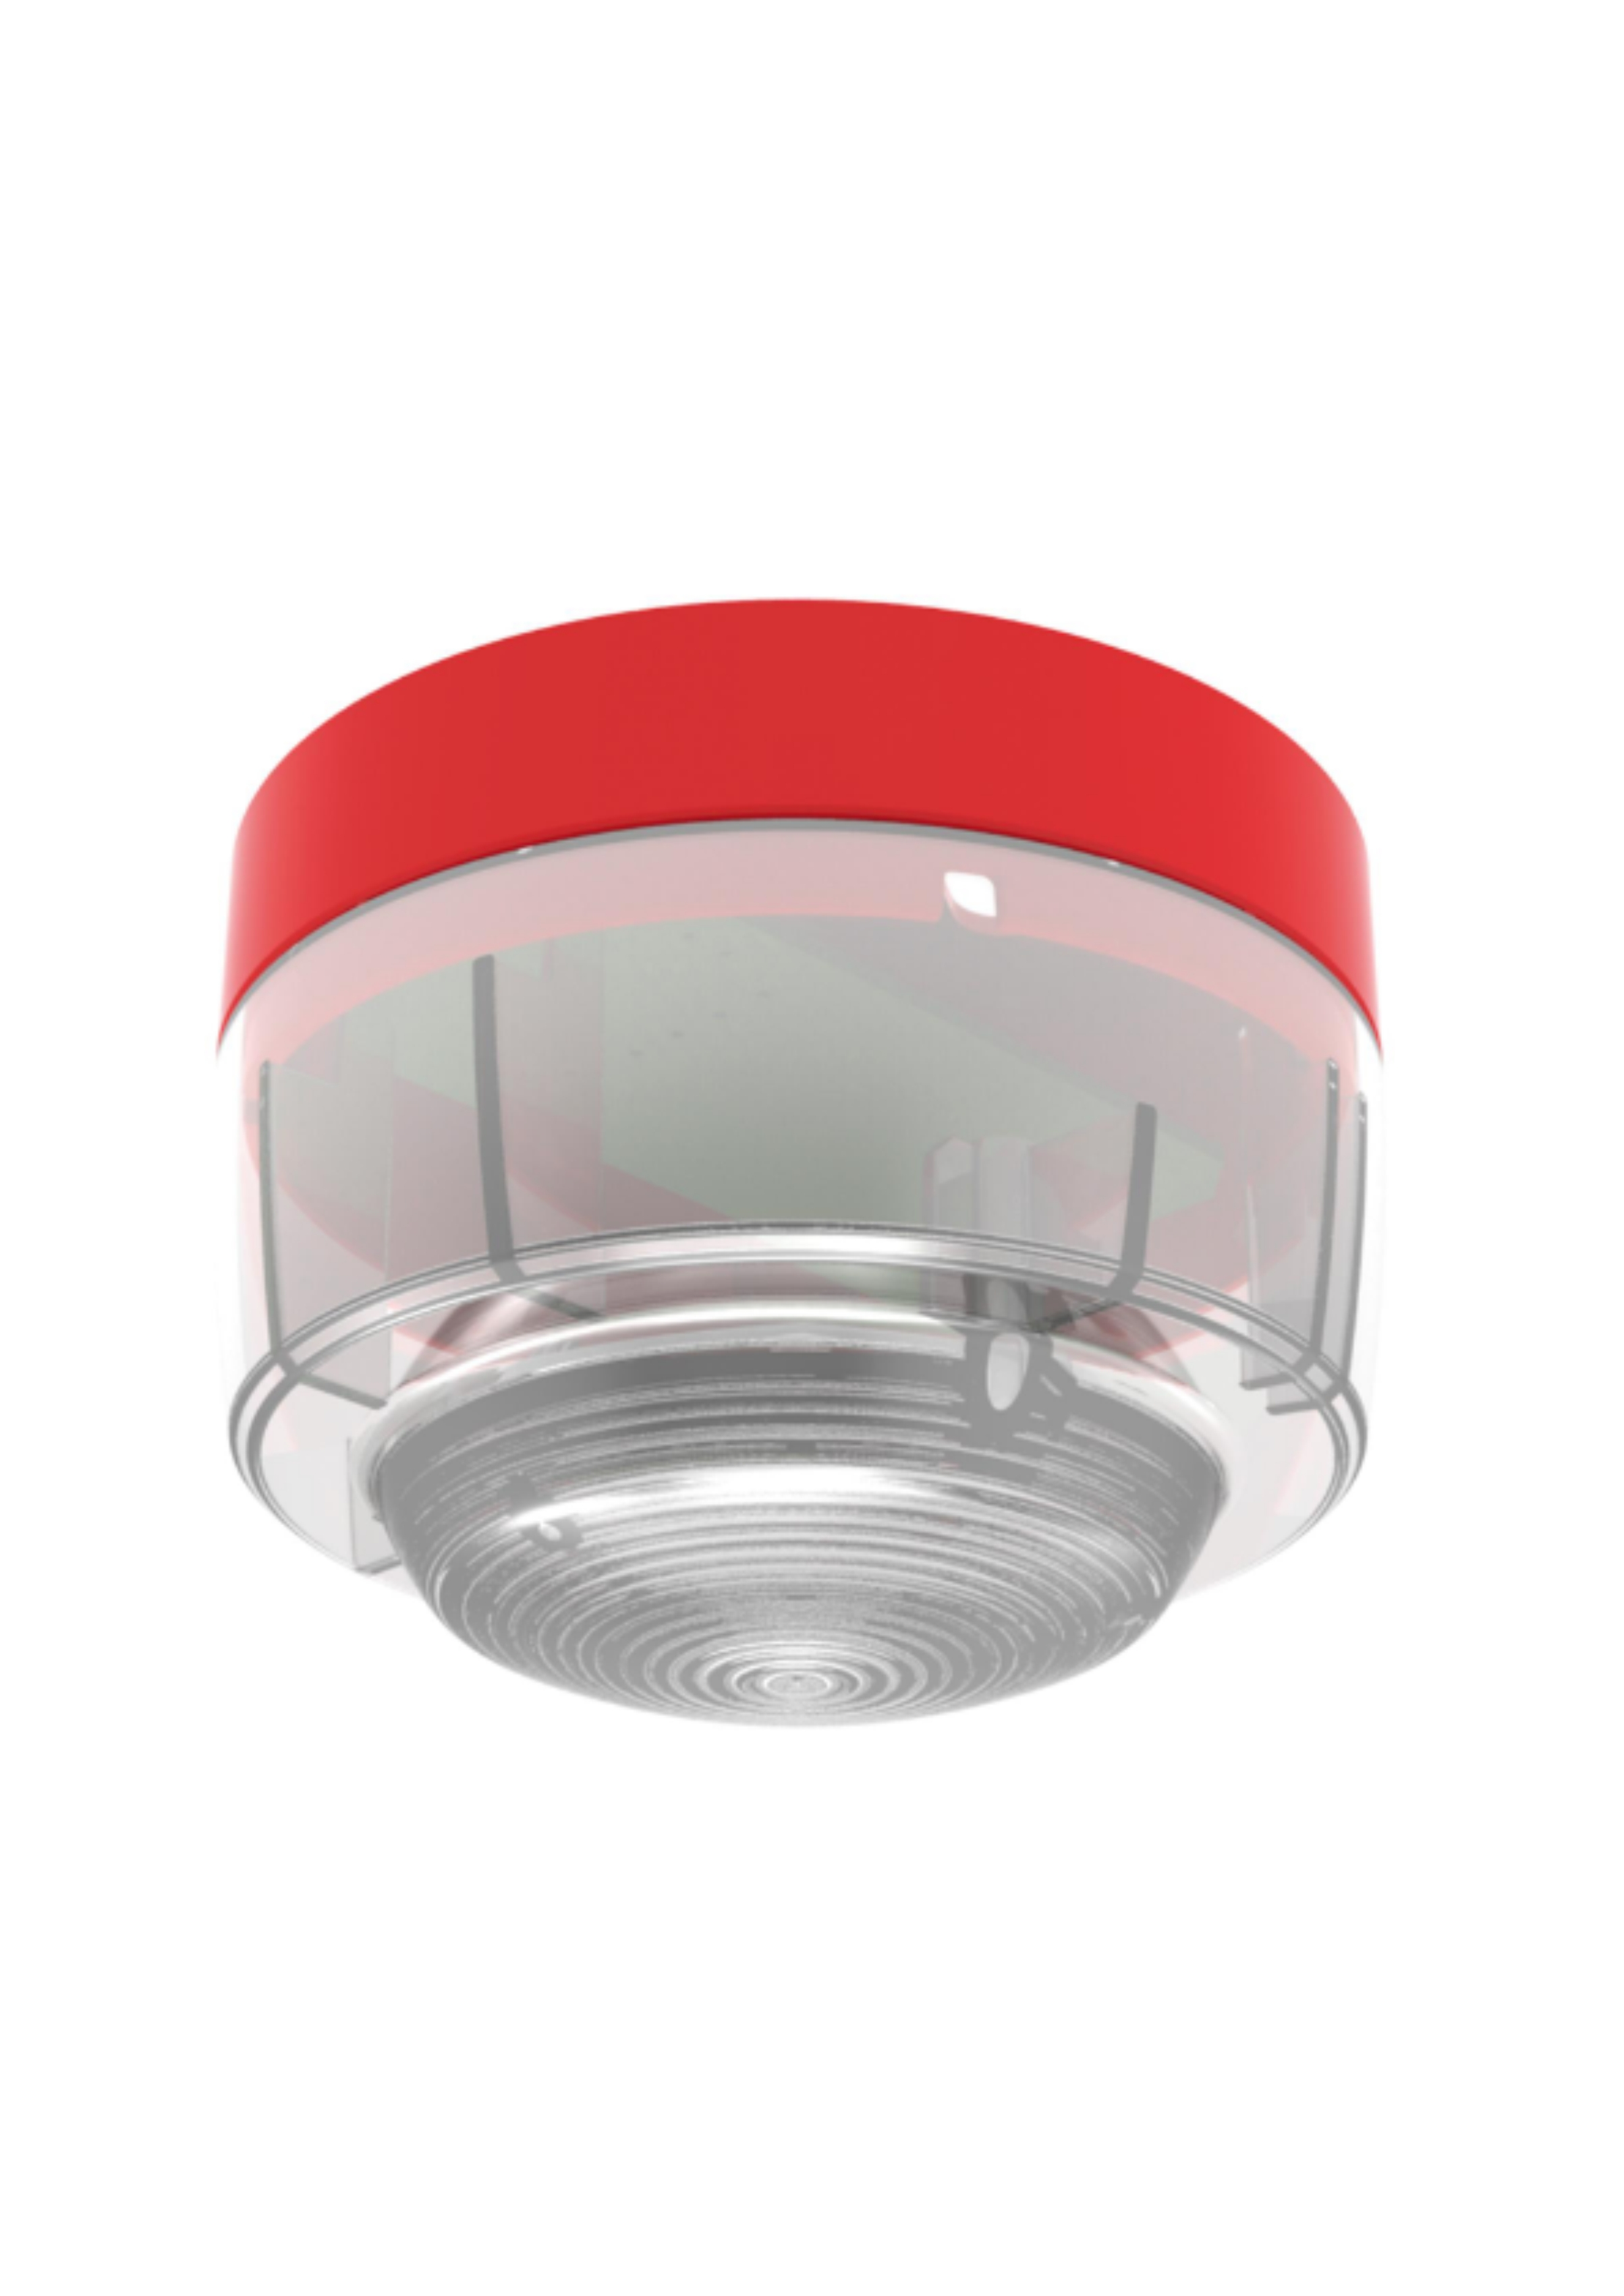 Conventional Beacon - Red case, red LEDs 1260160-0...